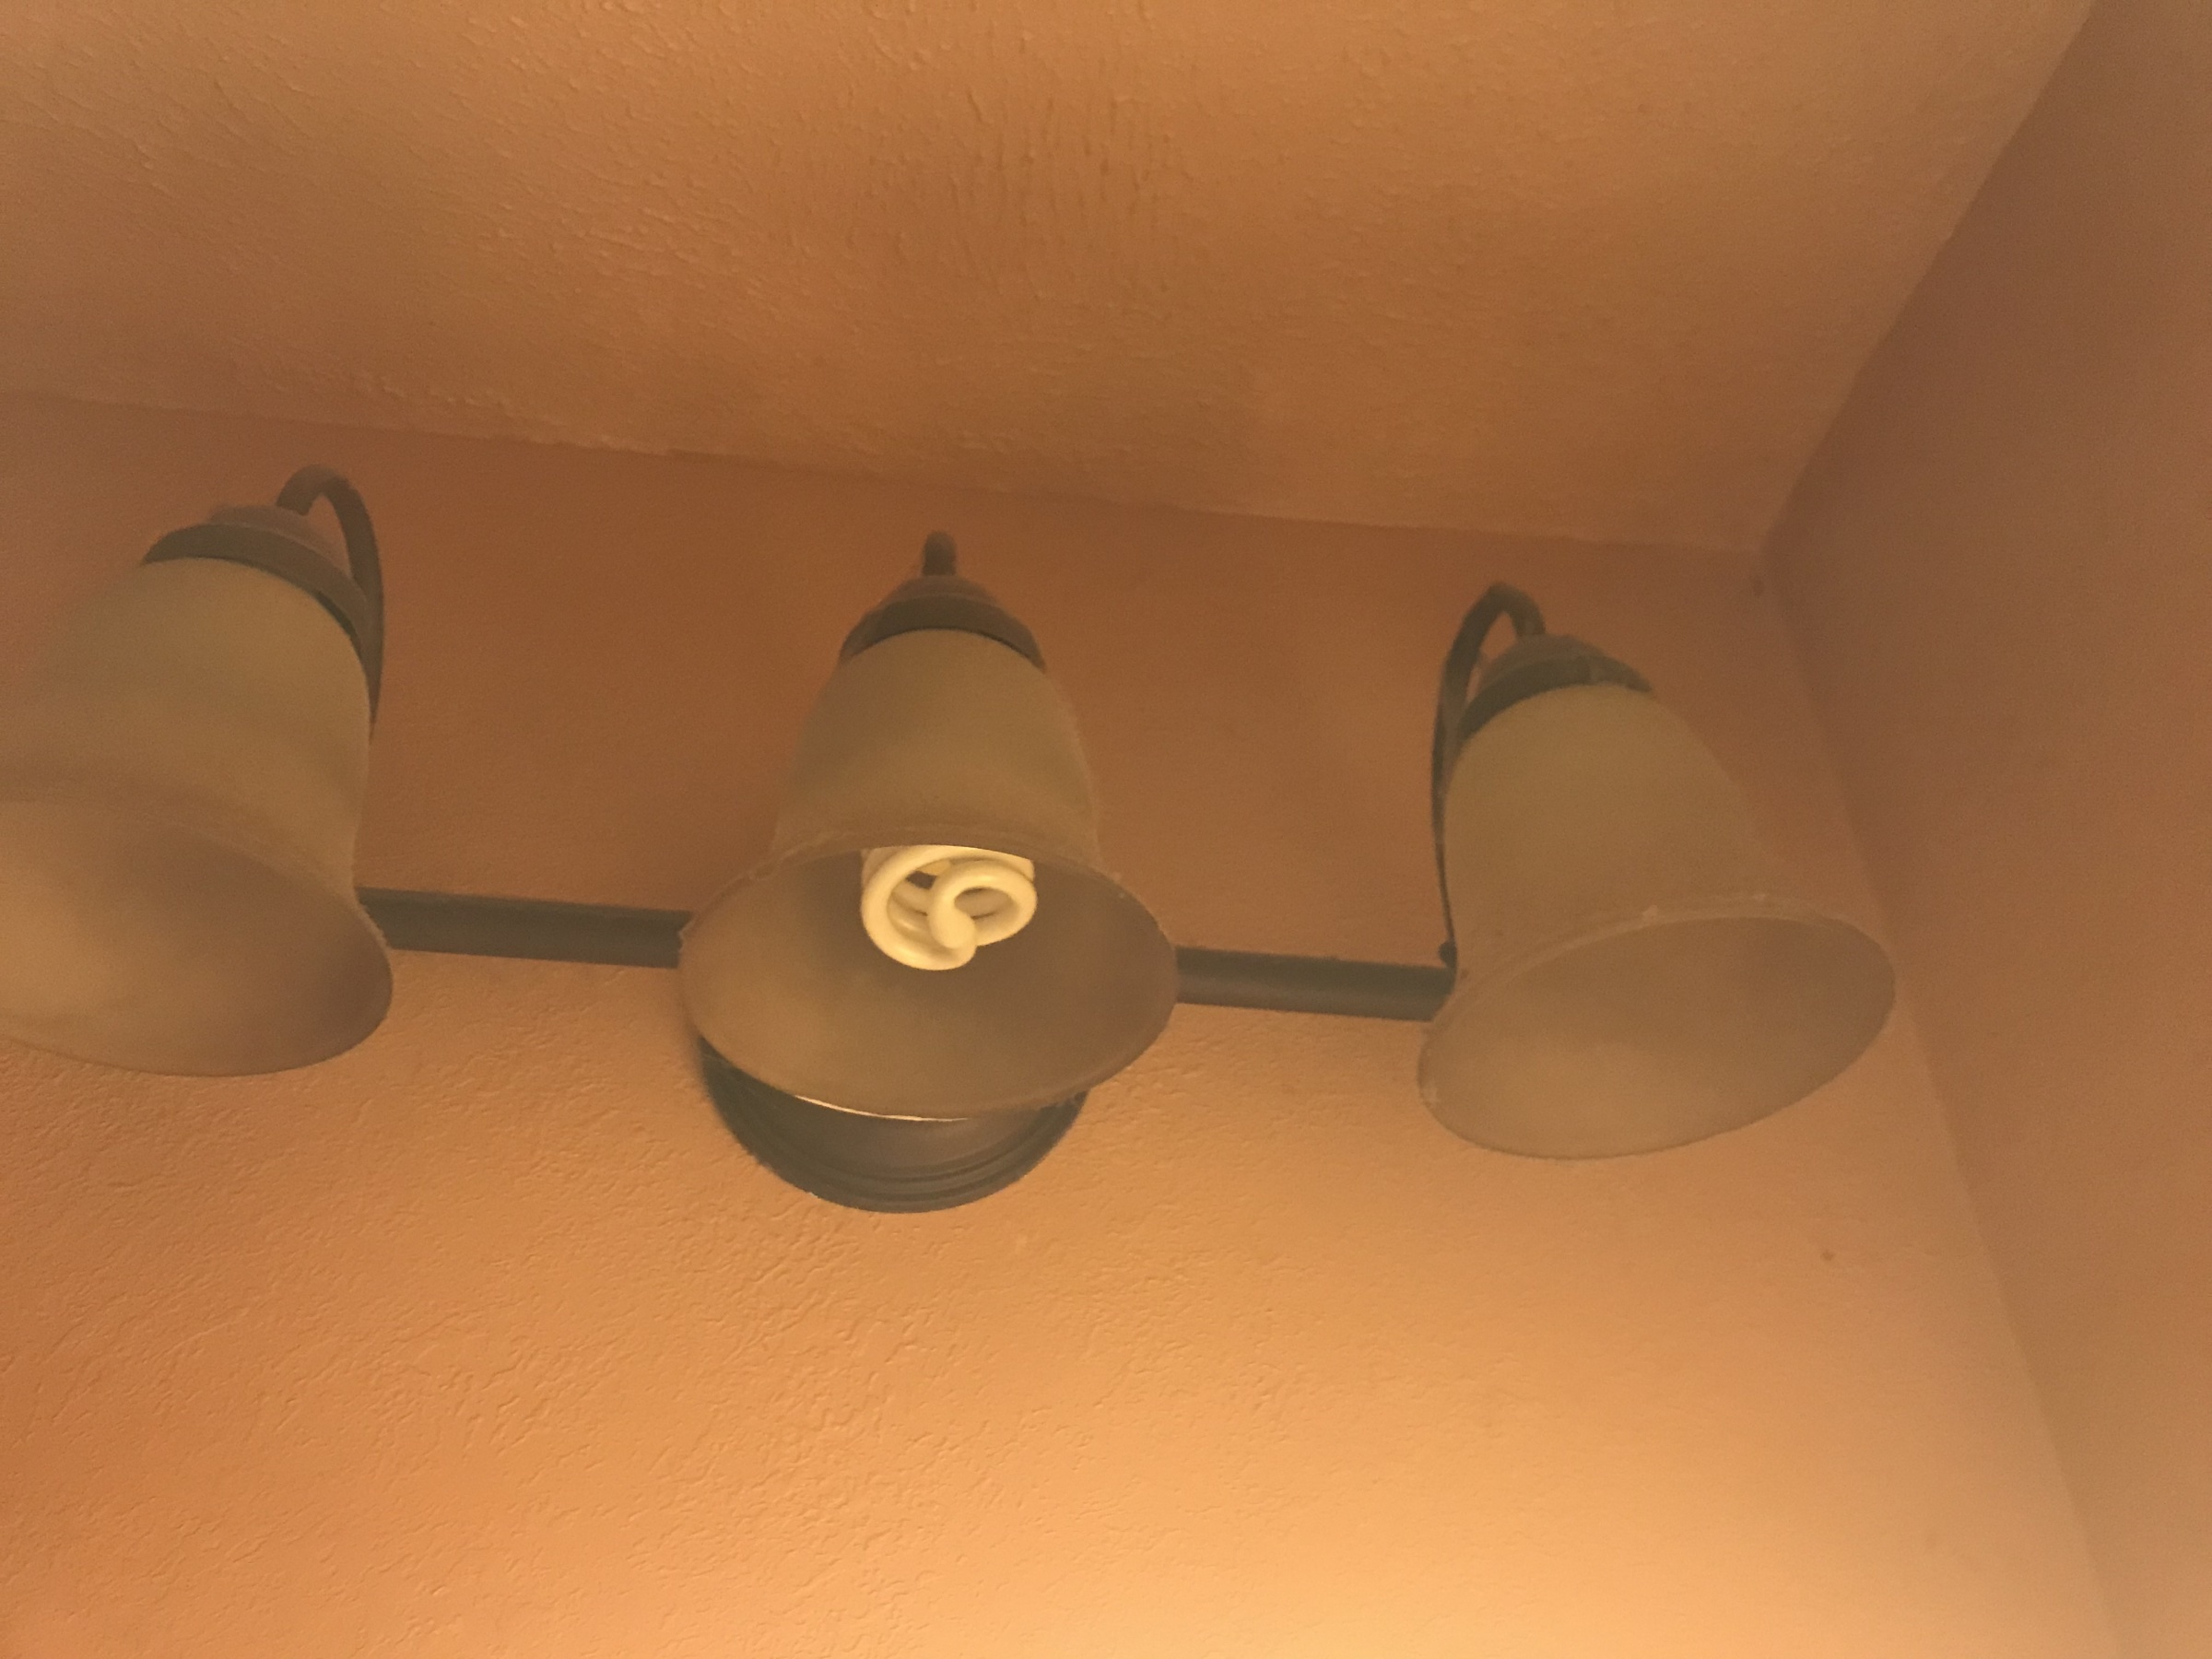 Bathroom Ceiling Fan And Light Do Not Work, But GFCI ...